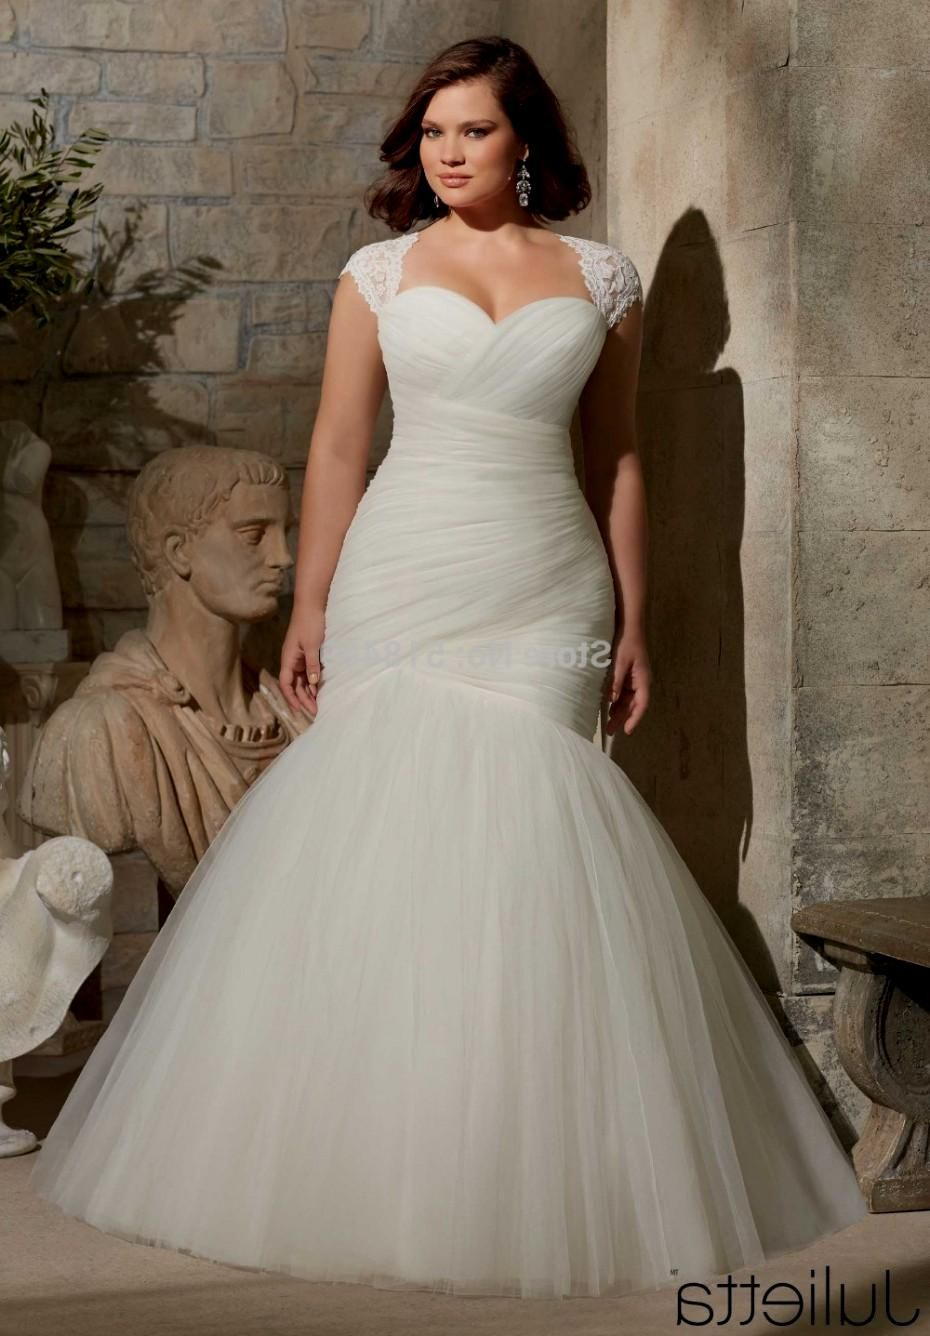 The mermaid wedding dress is one of the most flattering styles for